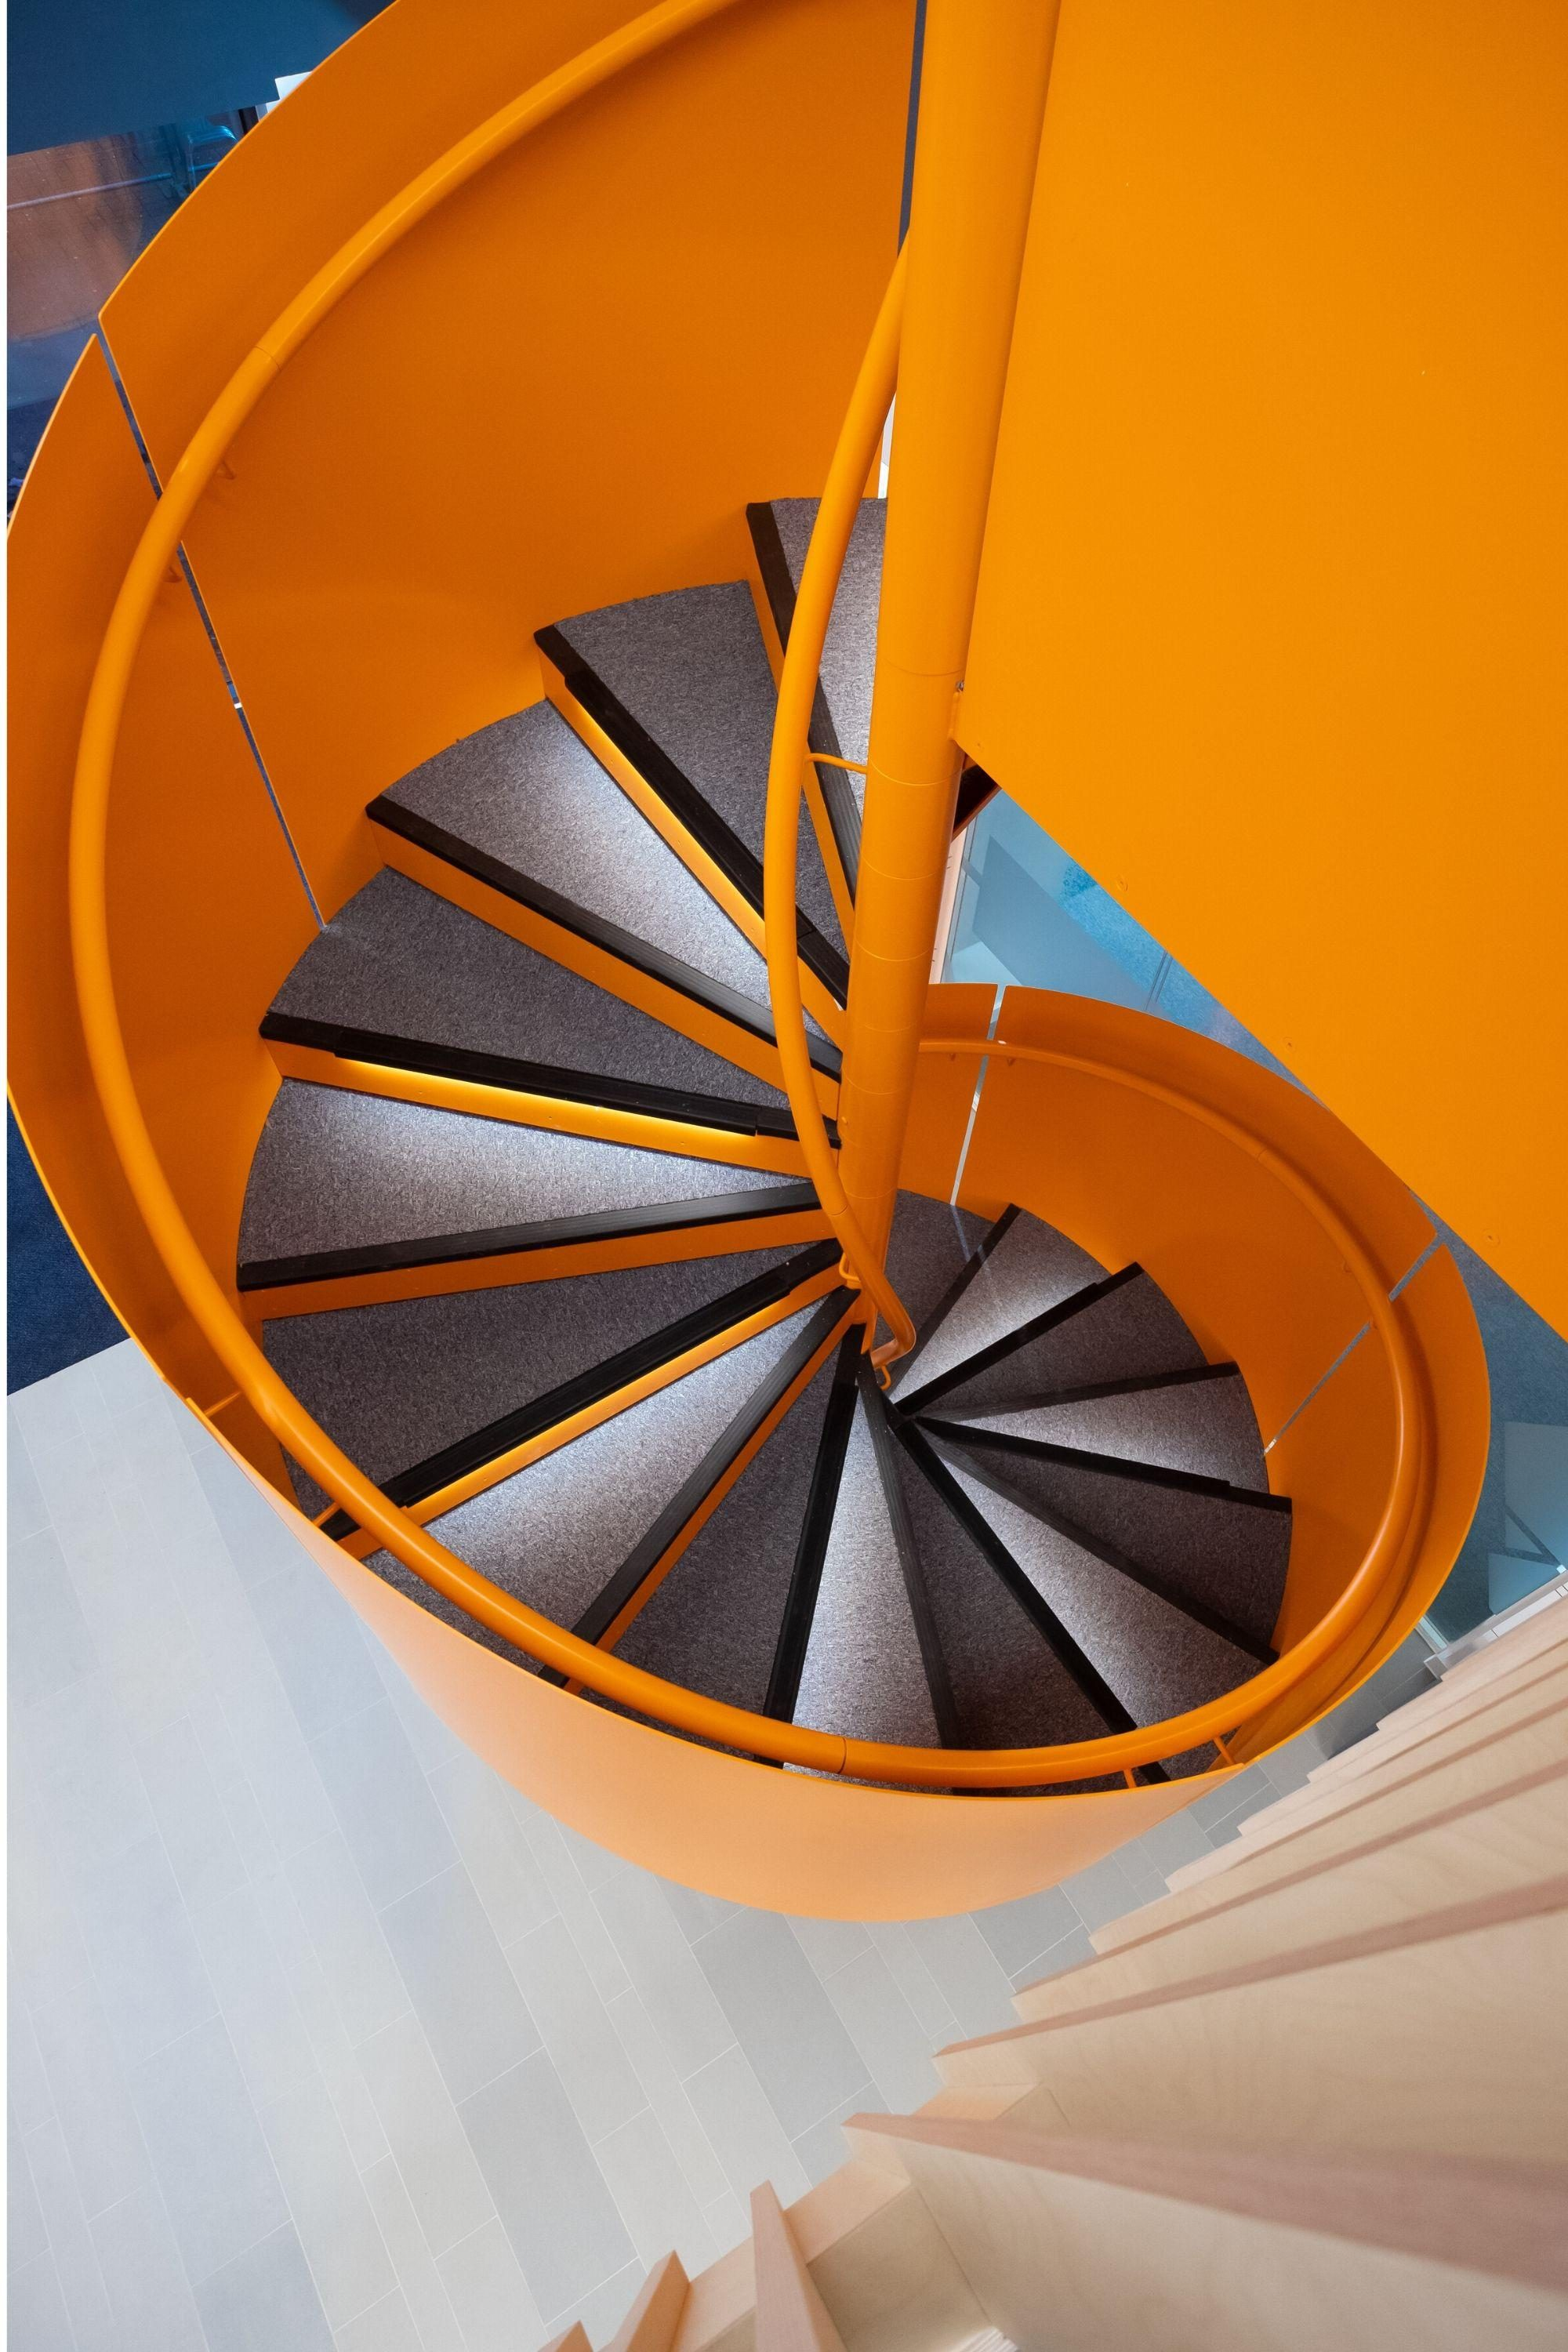 Orange balustrade and handrail on spiral stairs